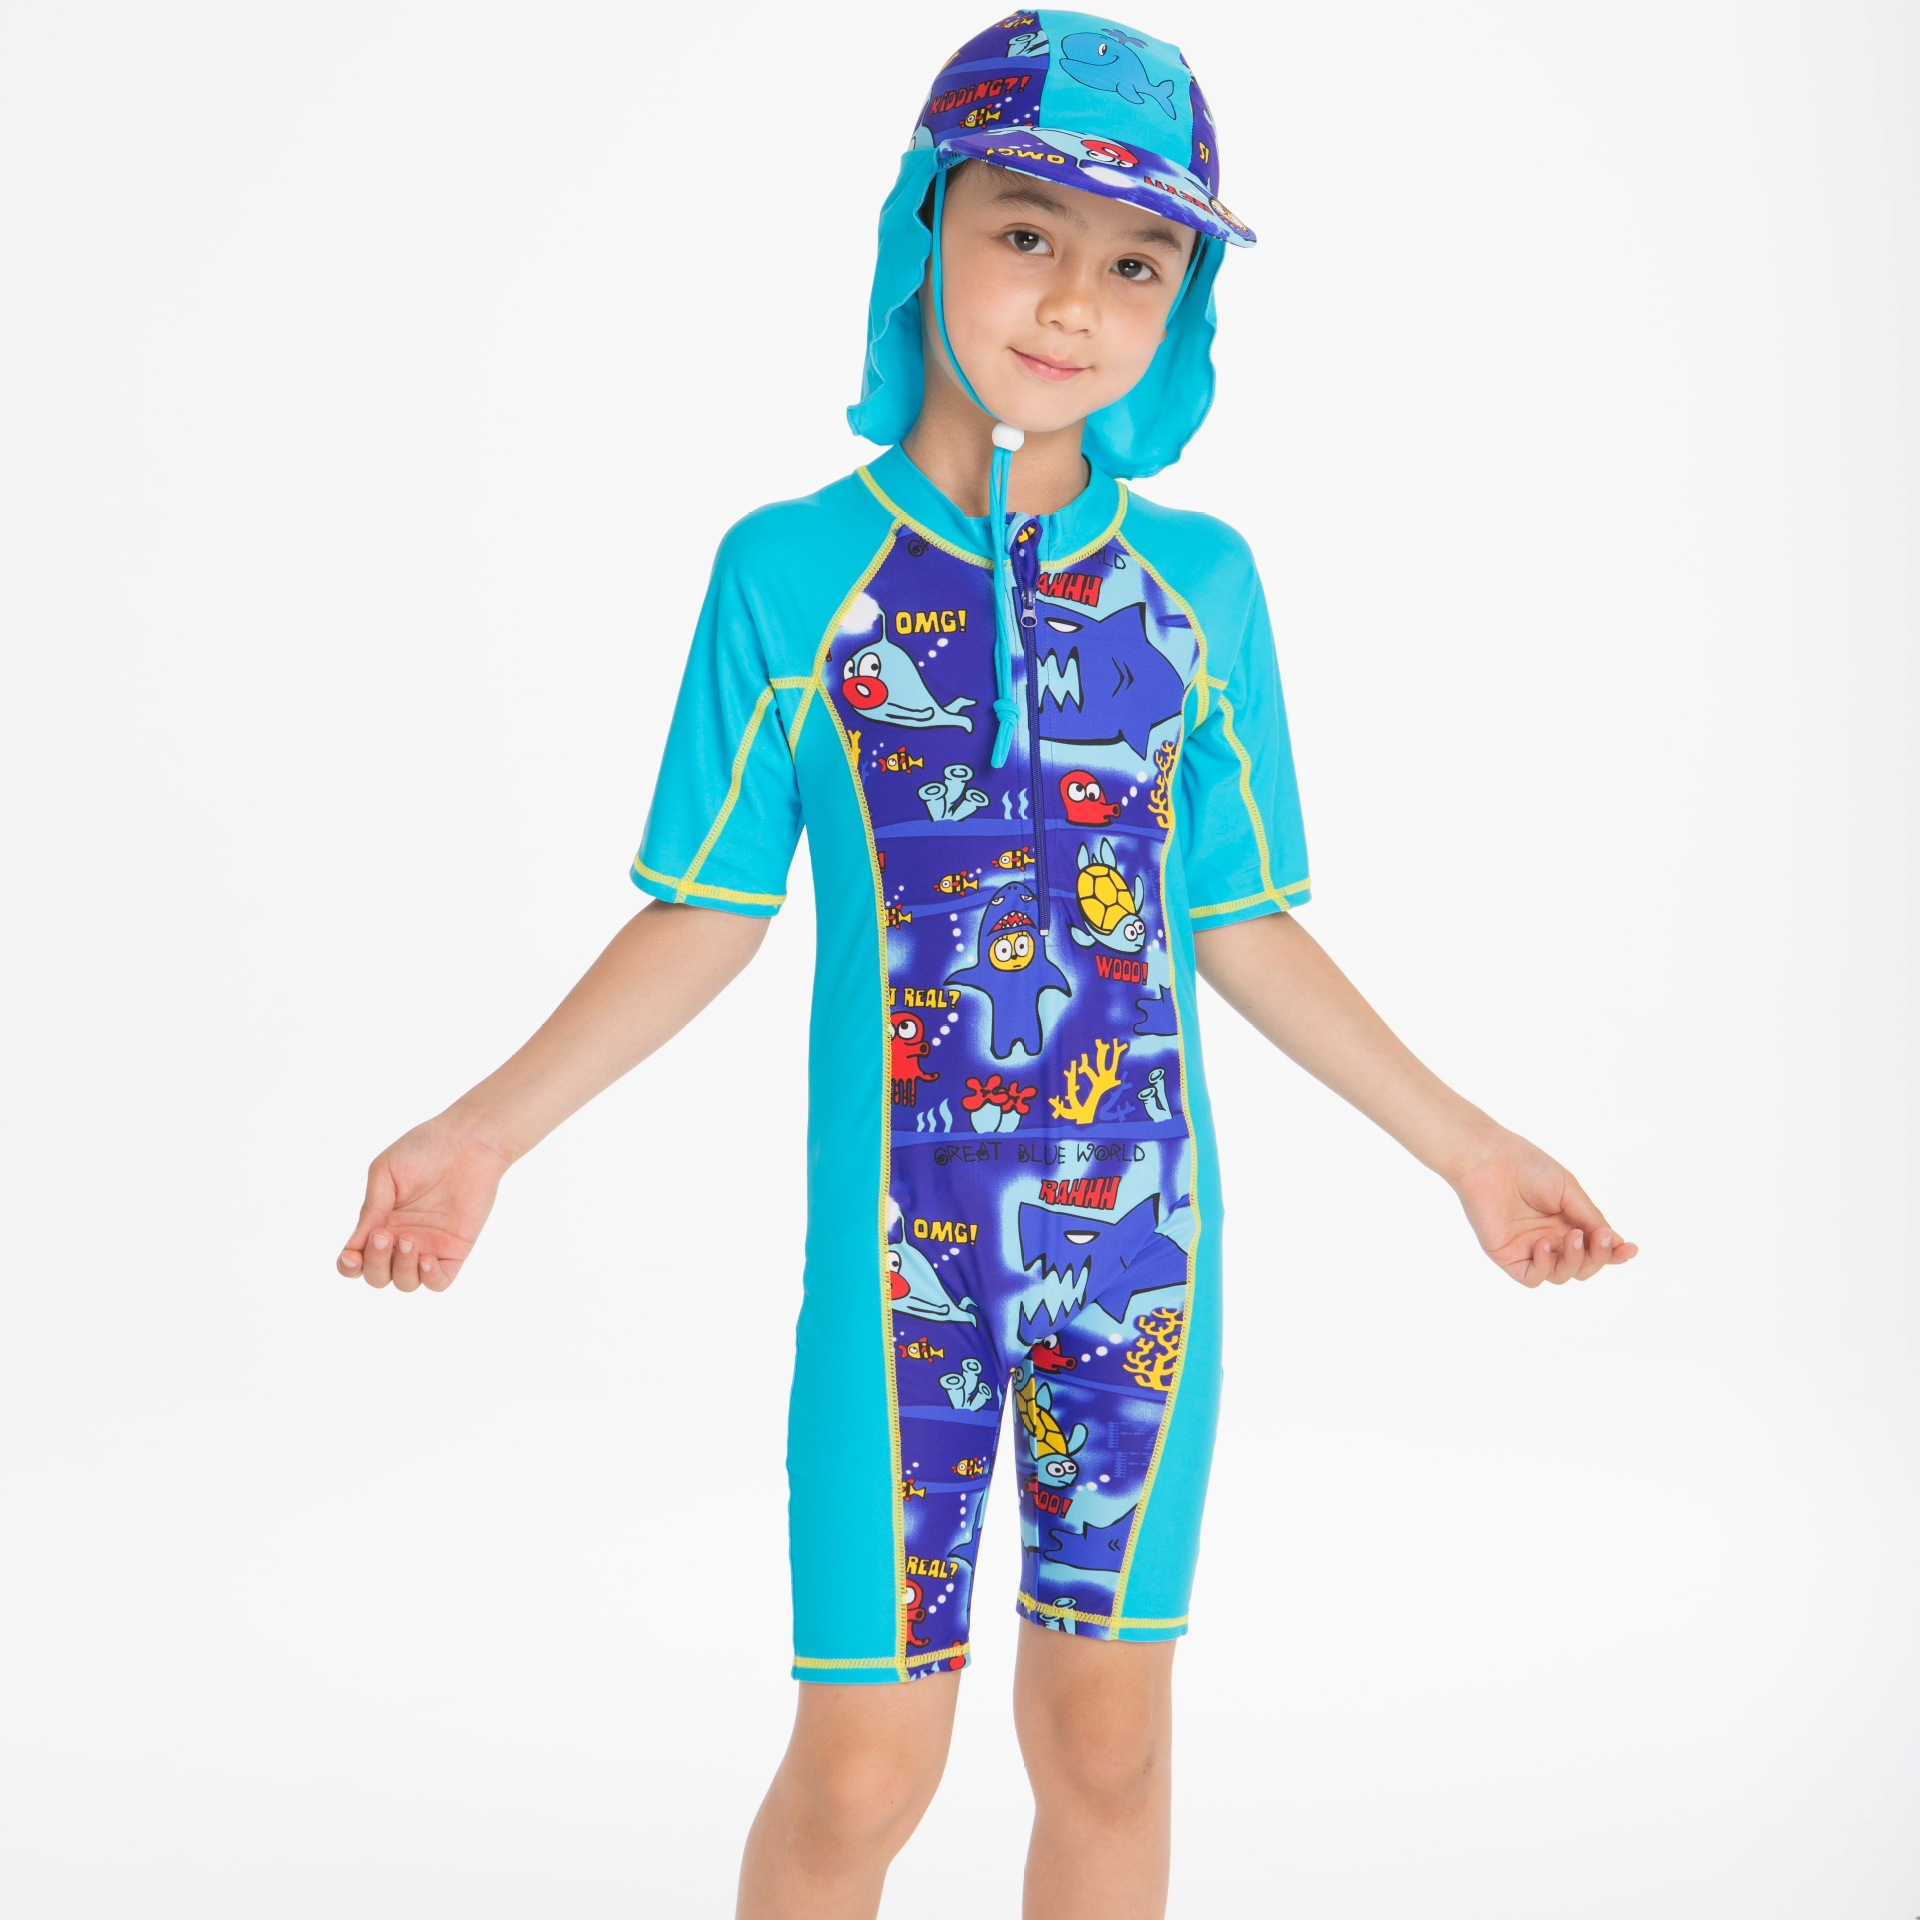 Boys' Cotton One-piece Swimsuit Island Equipment Anti-UV Half-sleeve Shirt Shorts Coat And Sun Protection Hat Two-Piece Set